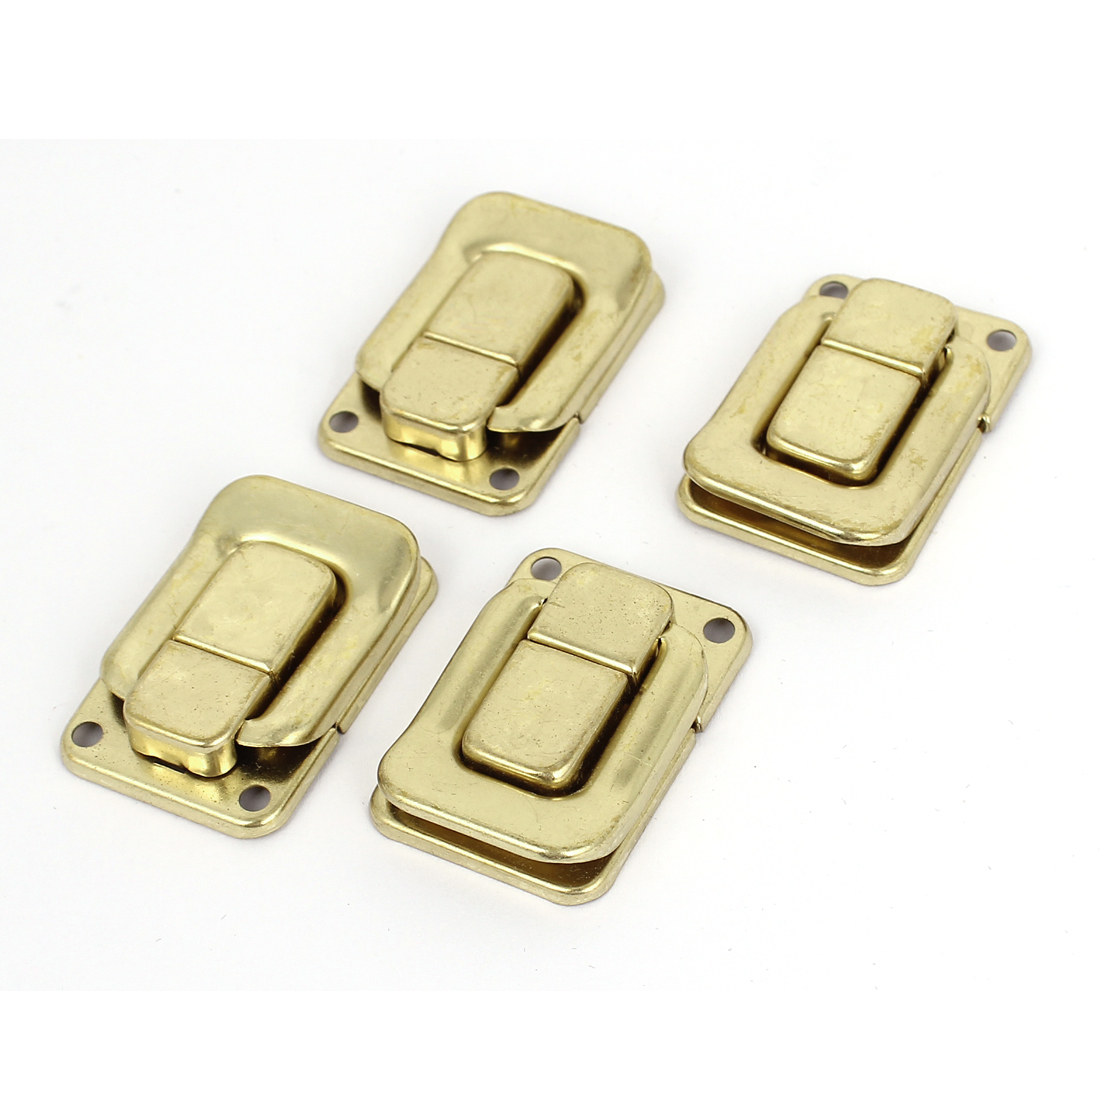 Case Box Chest Suitcase Trunk Toggle Catch Latch Clasp Hardware Gold Tone 4 Pcs